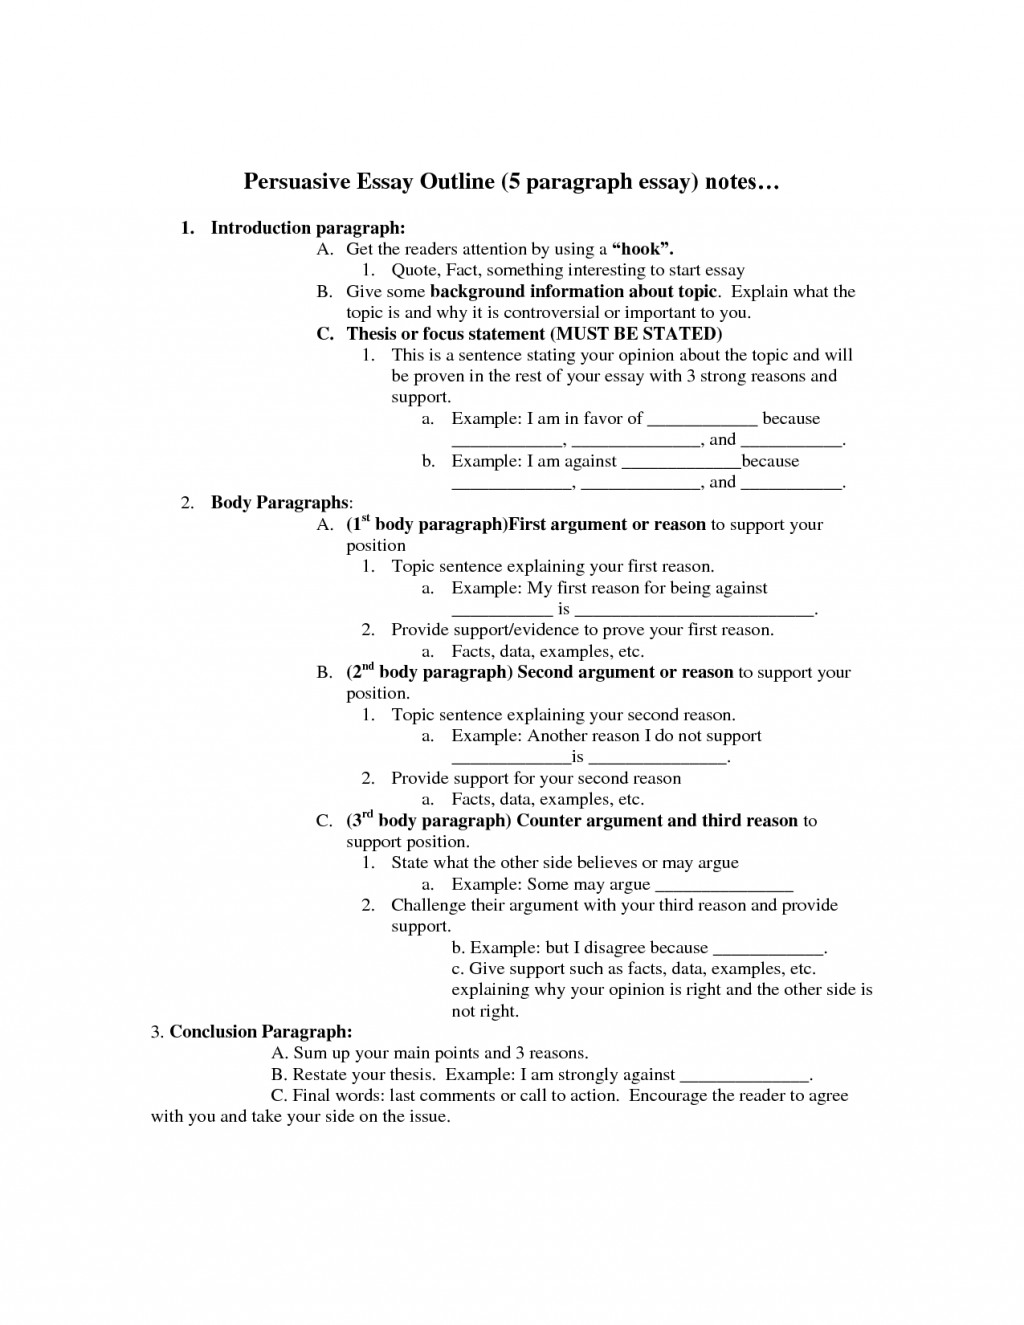 006 Persuasive Essay Outline Unbelievable Doc Template Middle School Pdf Large